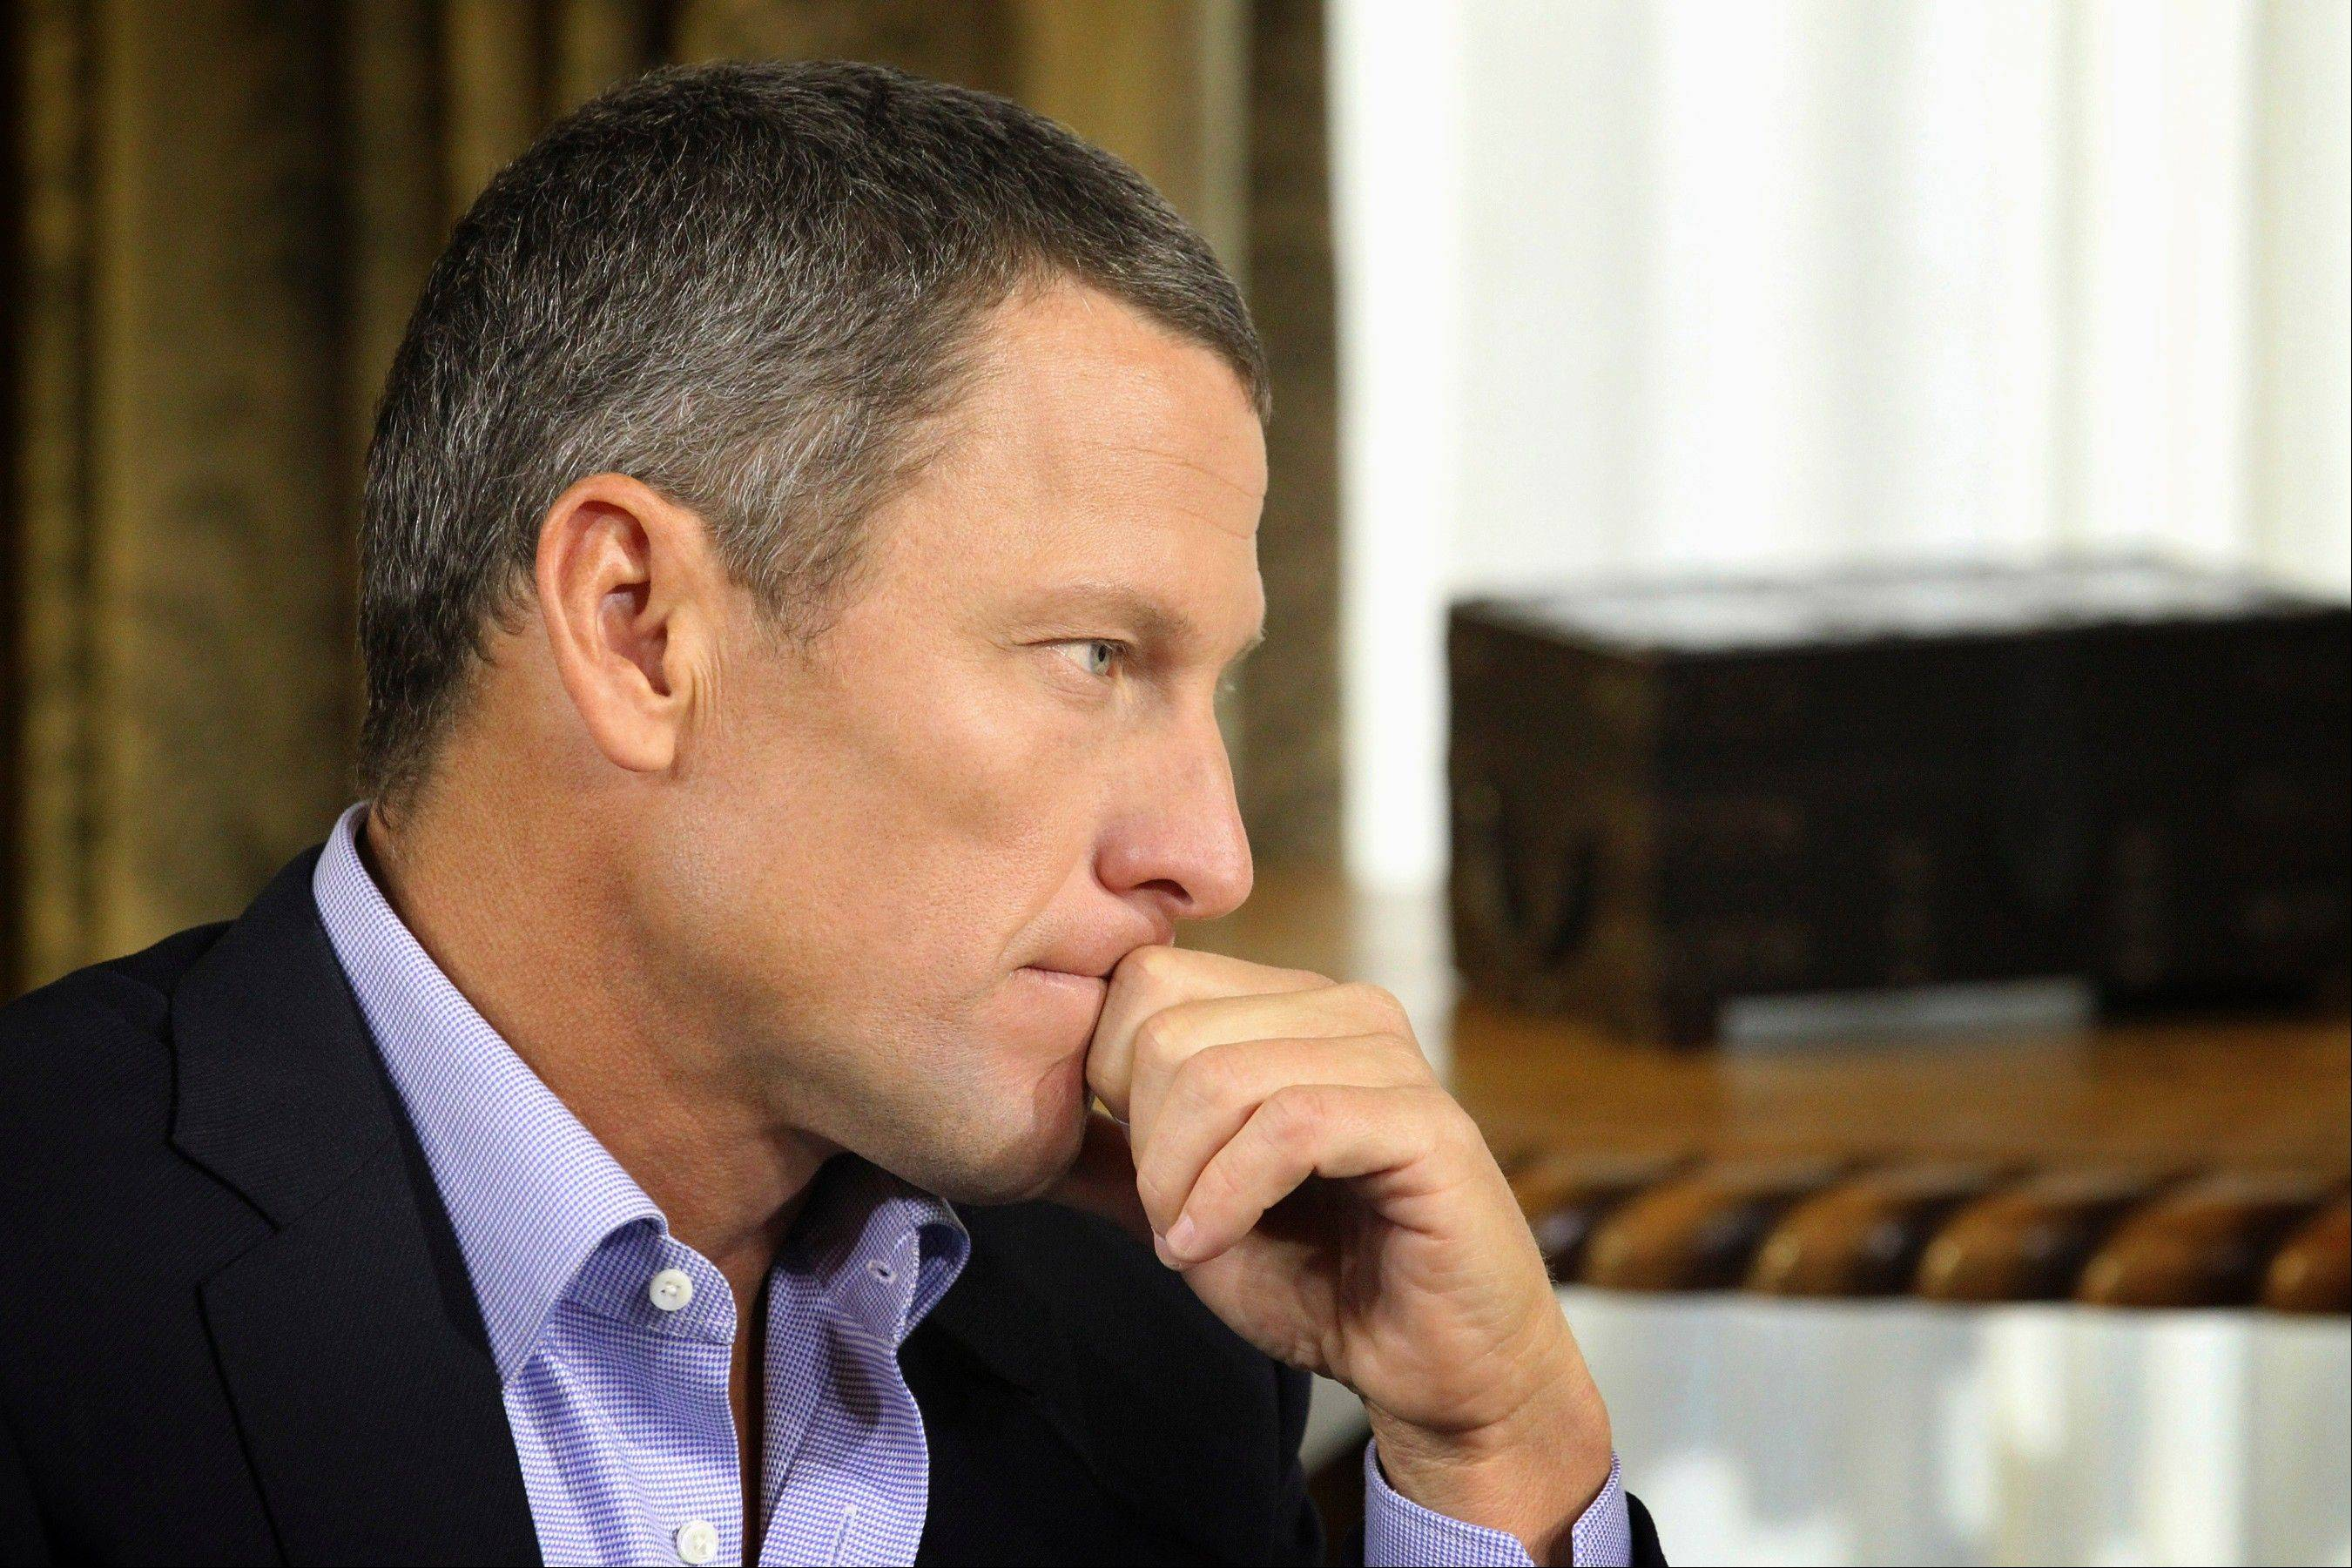 Armstrong turns emotional in 2nd part of interview